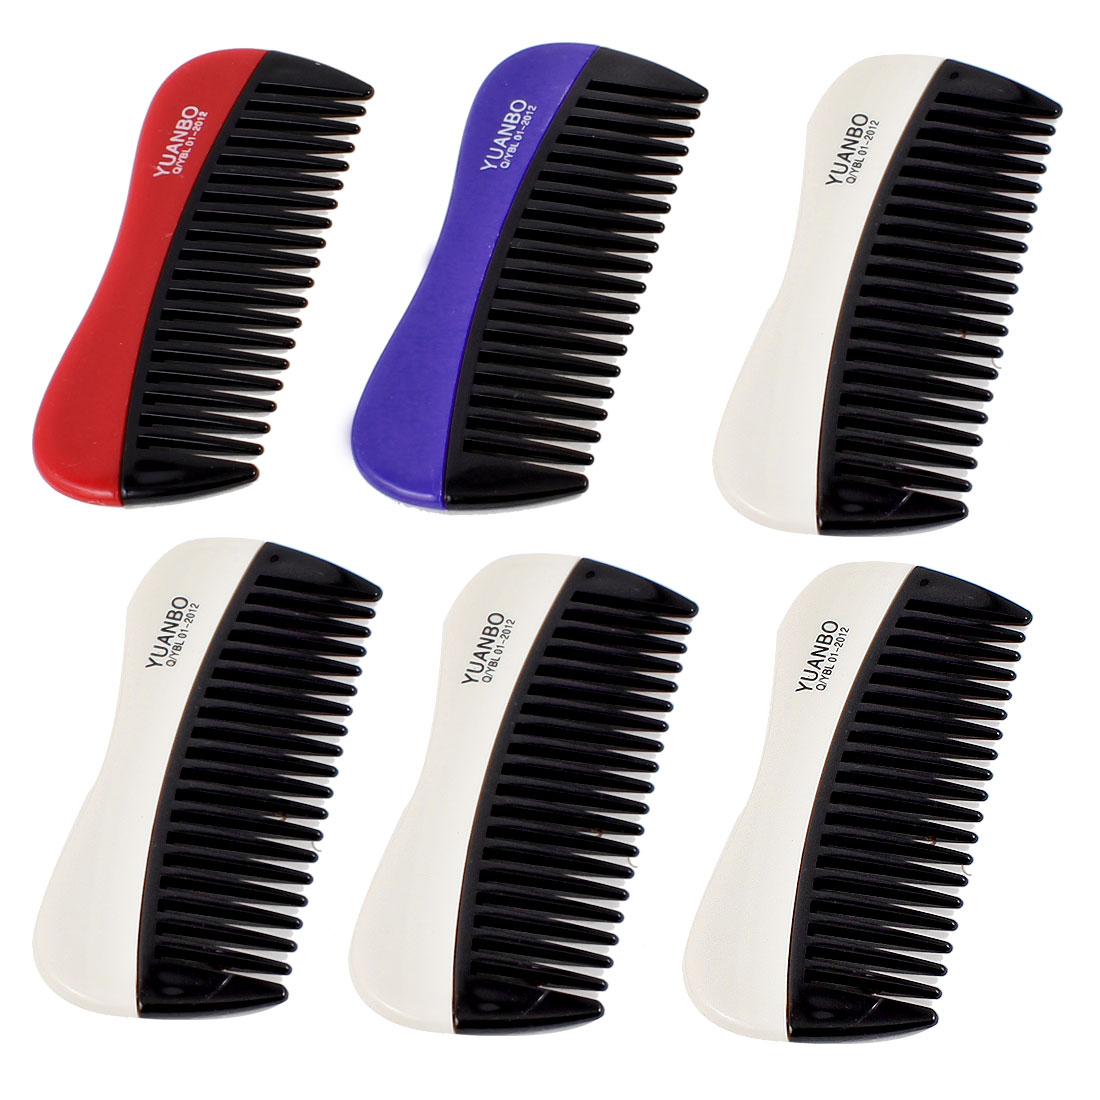 6 Pcs Barbershop Hairdressing 20 Teeth Tri Color Plastic Hair Comb